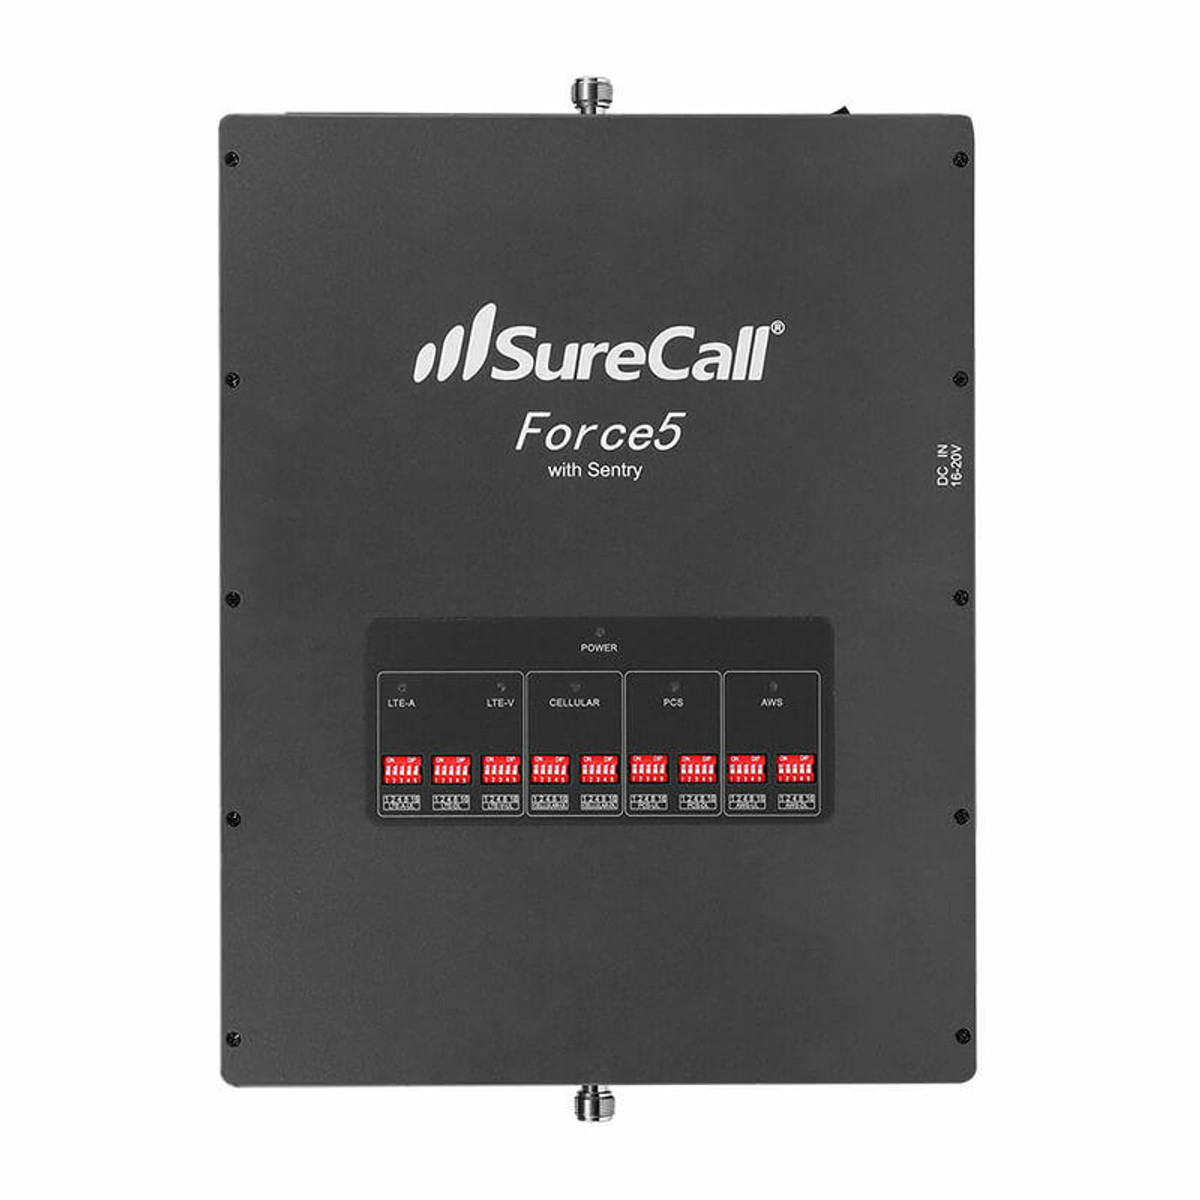 SureCall SureCall Force5 2.0 Signal Booster Kit with 4 Inside and 1 Outside Antennas